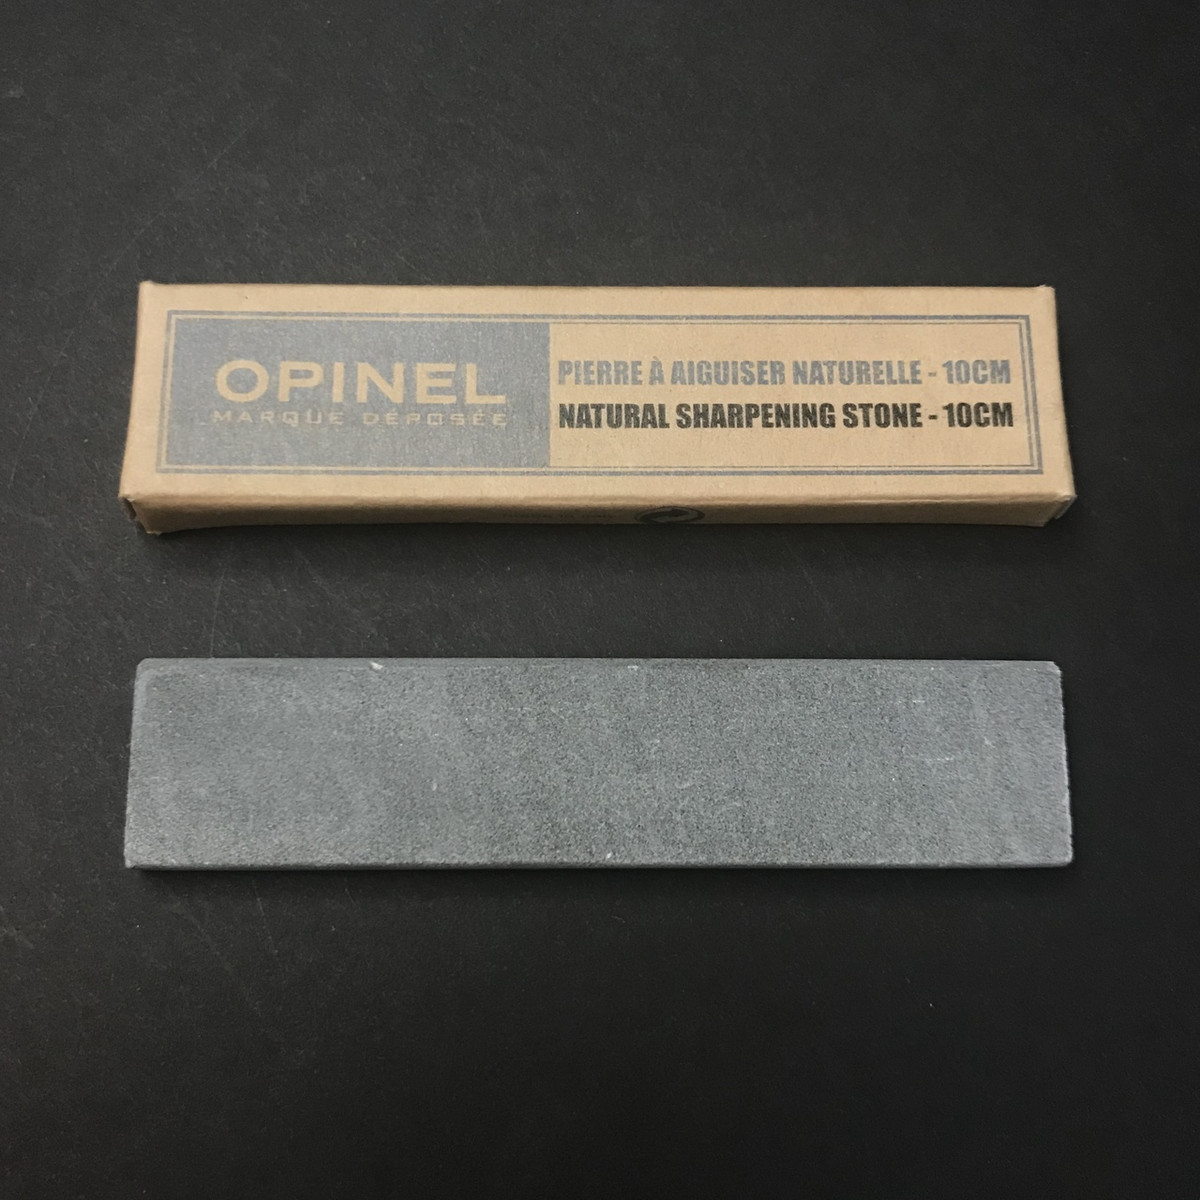 Opinel - Sharpening Stone